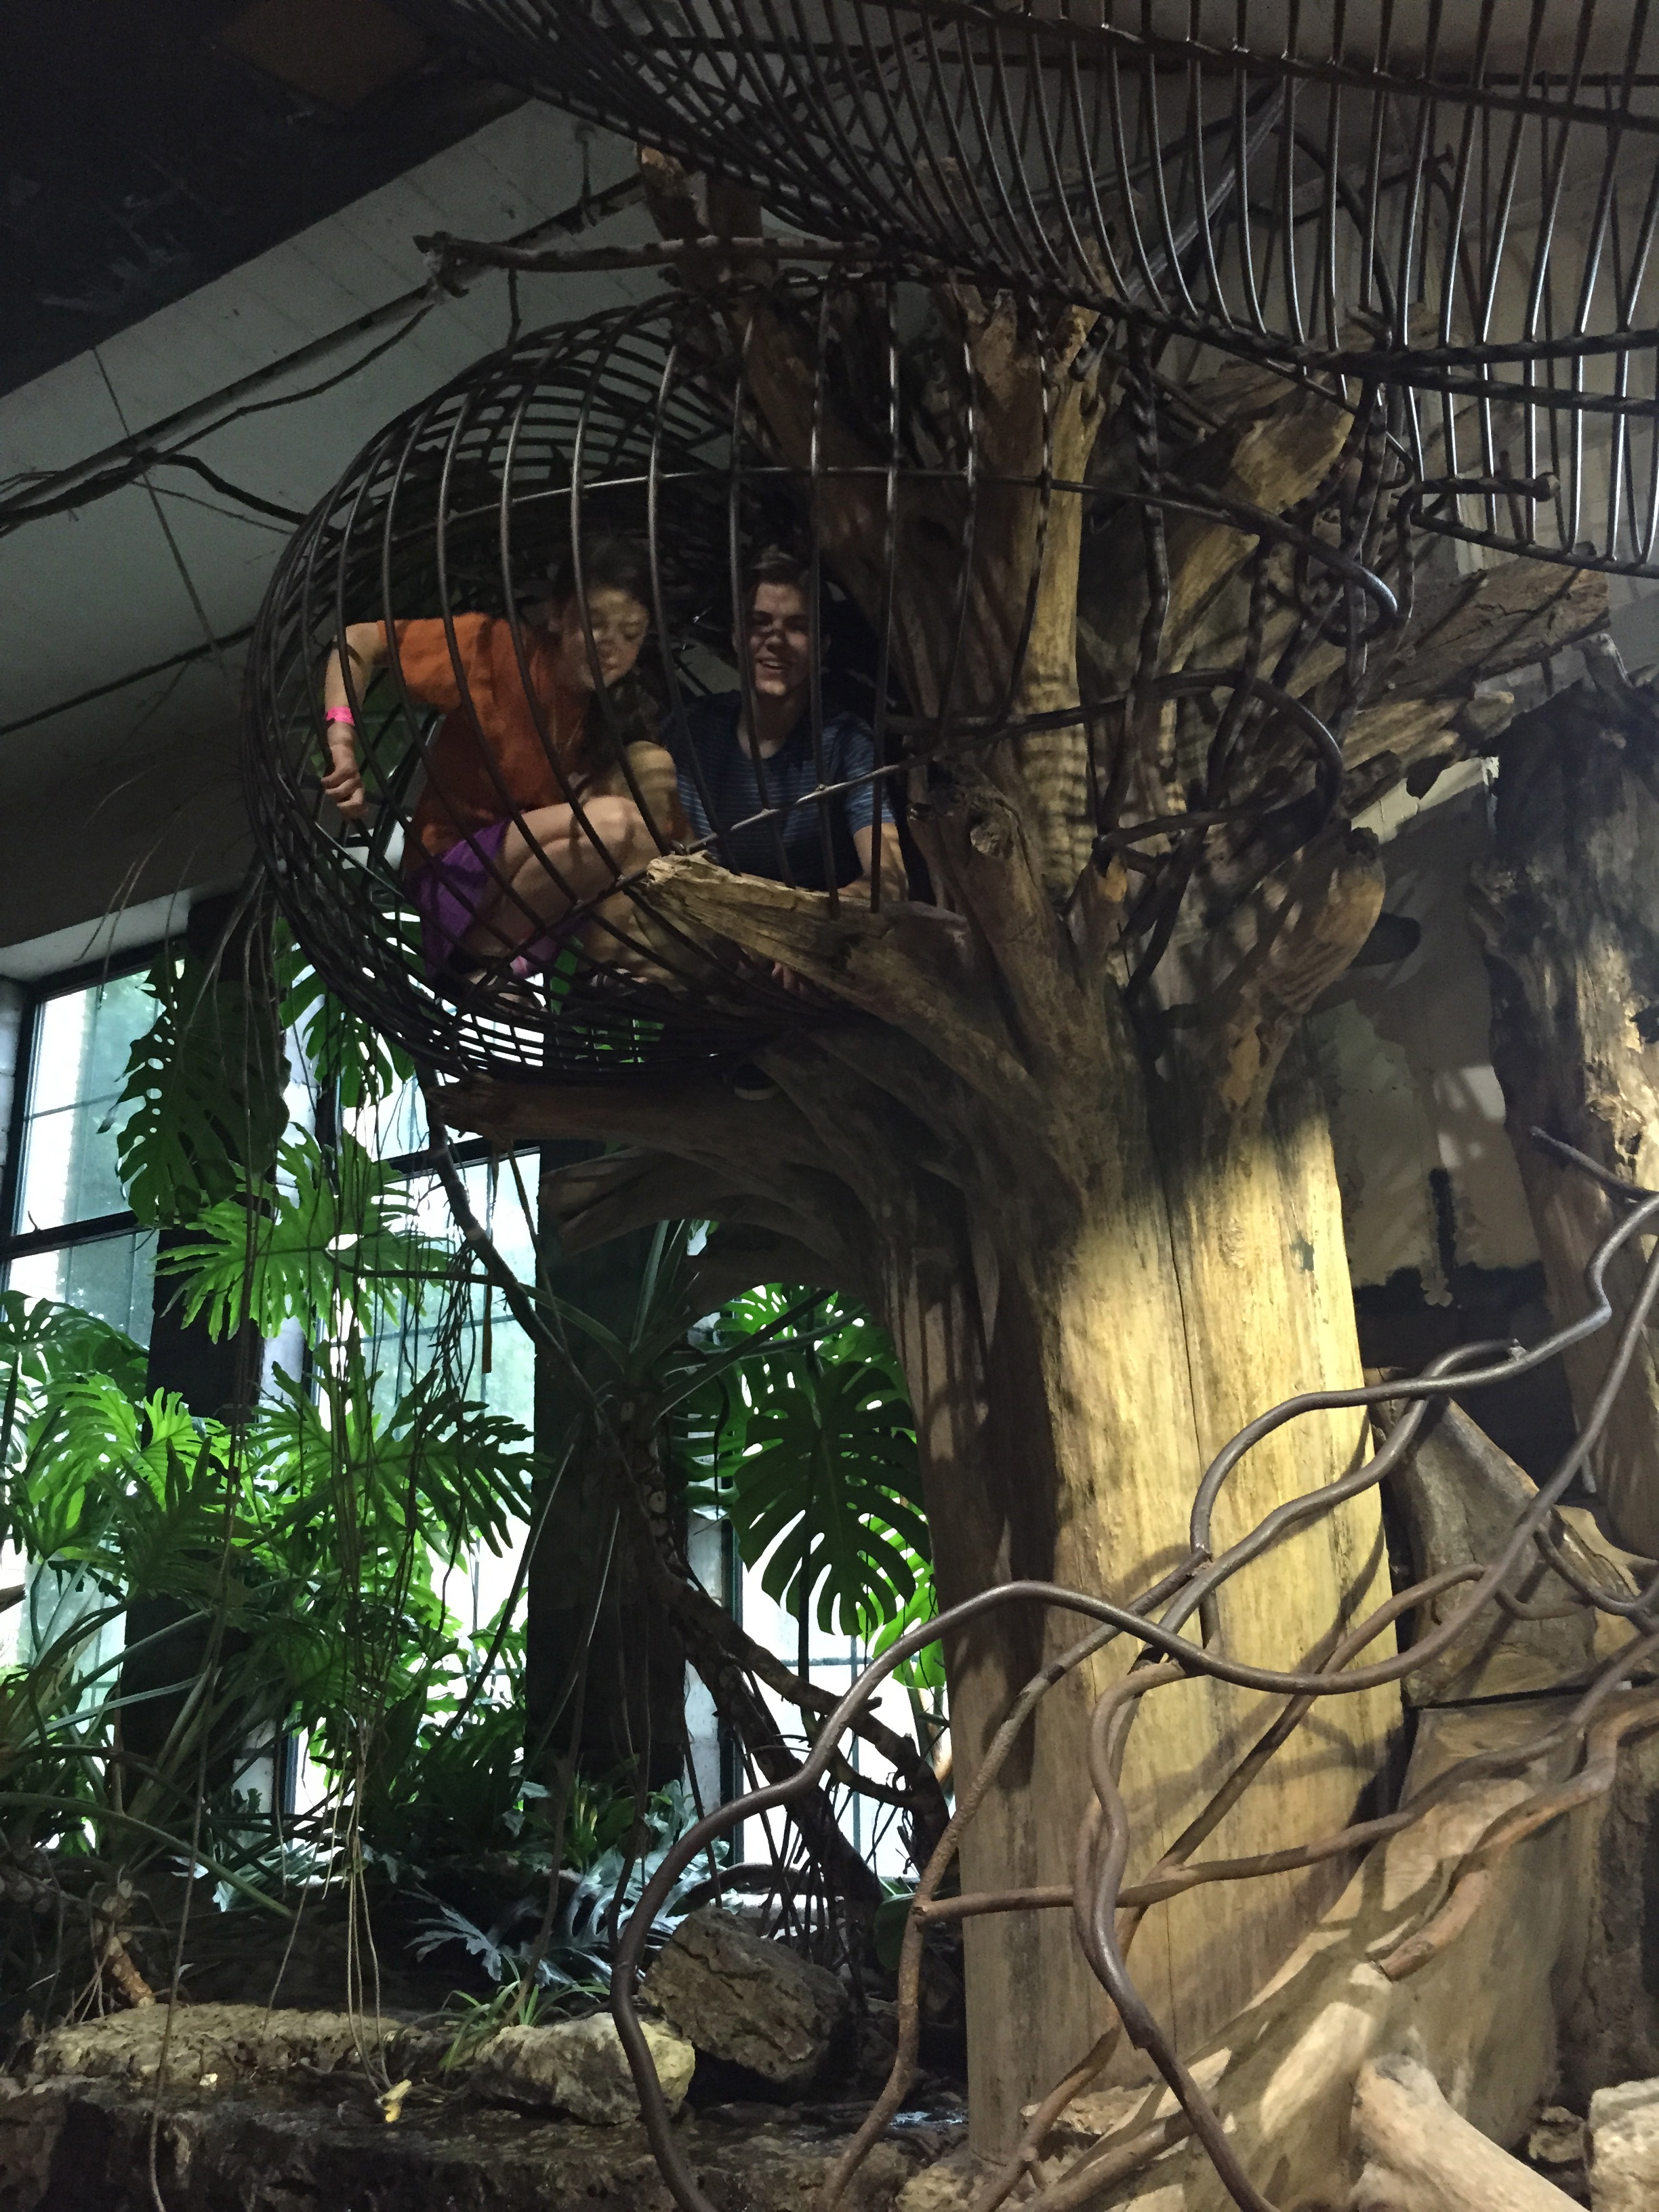 At the City Museum.